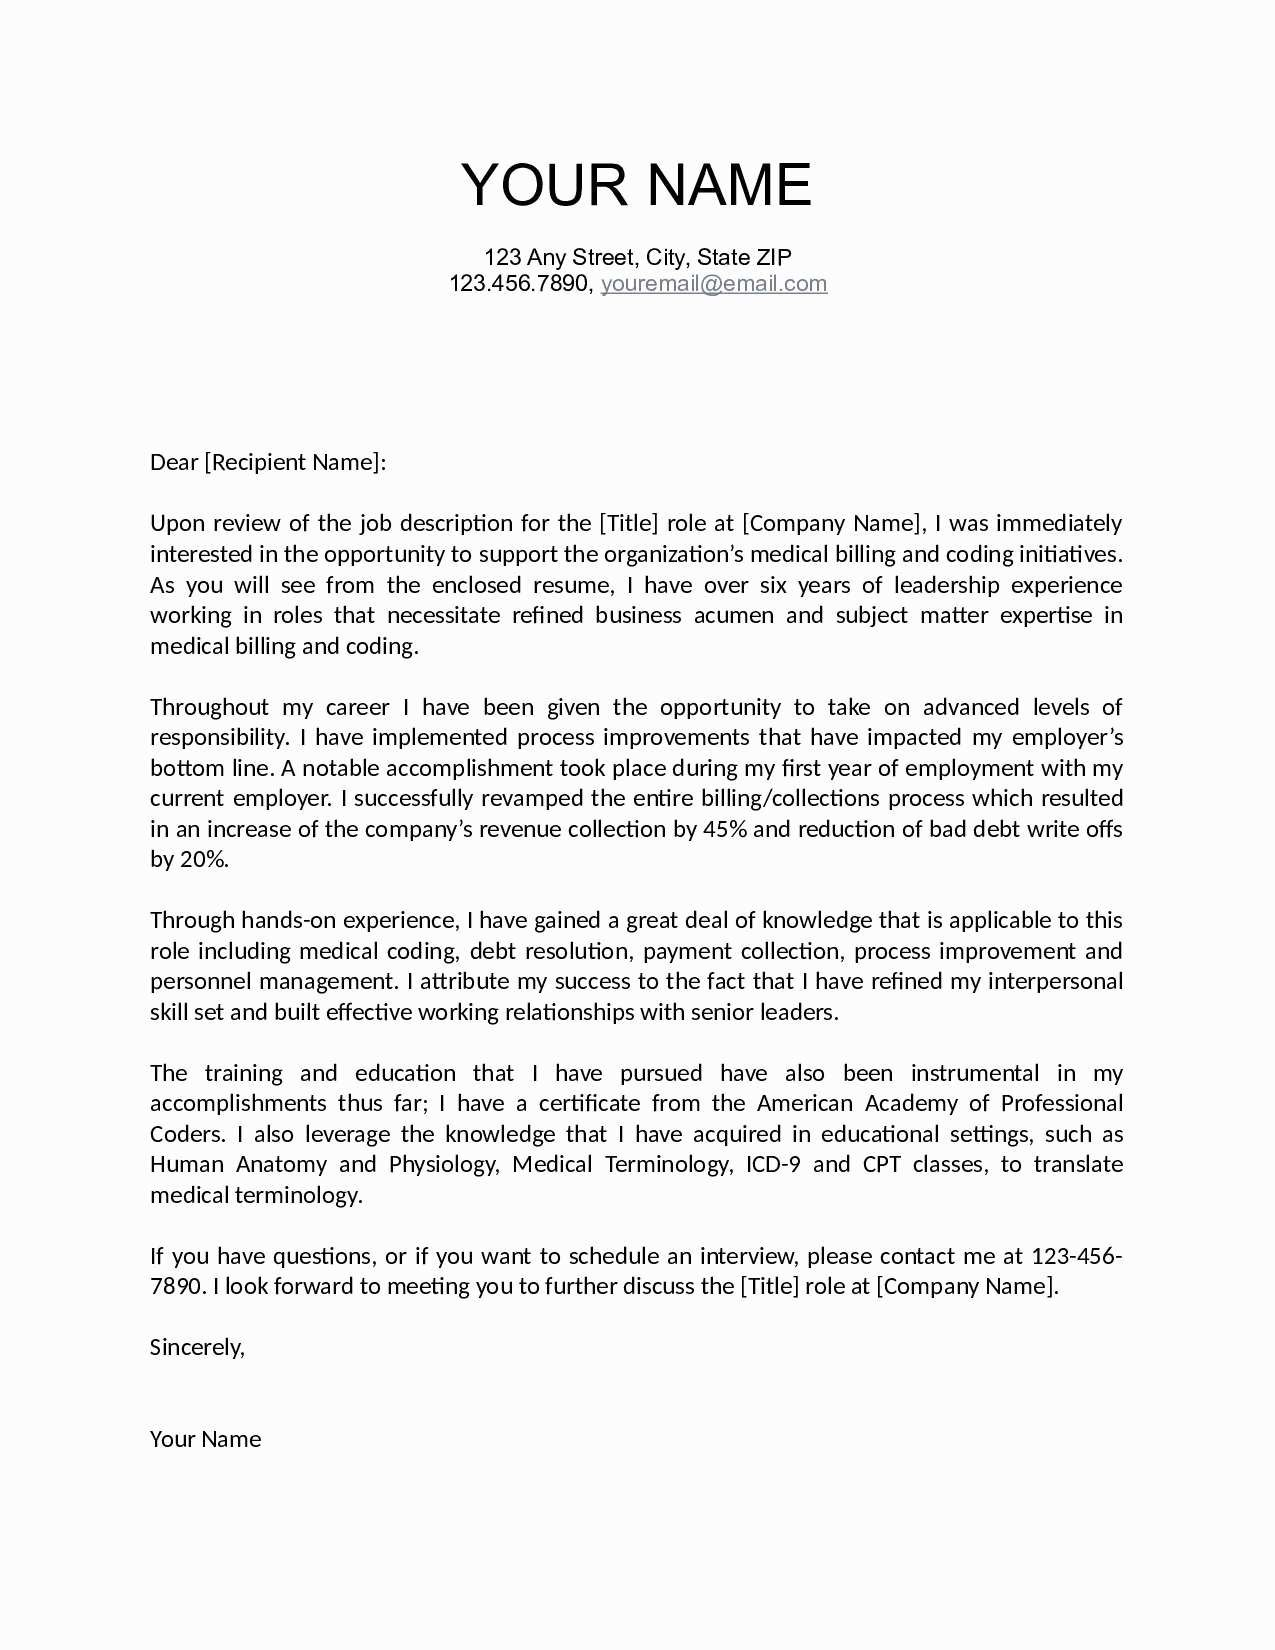 Offer Of Employment Letter Template Canada - New Fer Letter with Job Description Sample